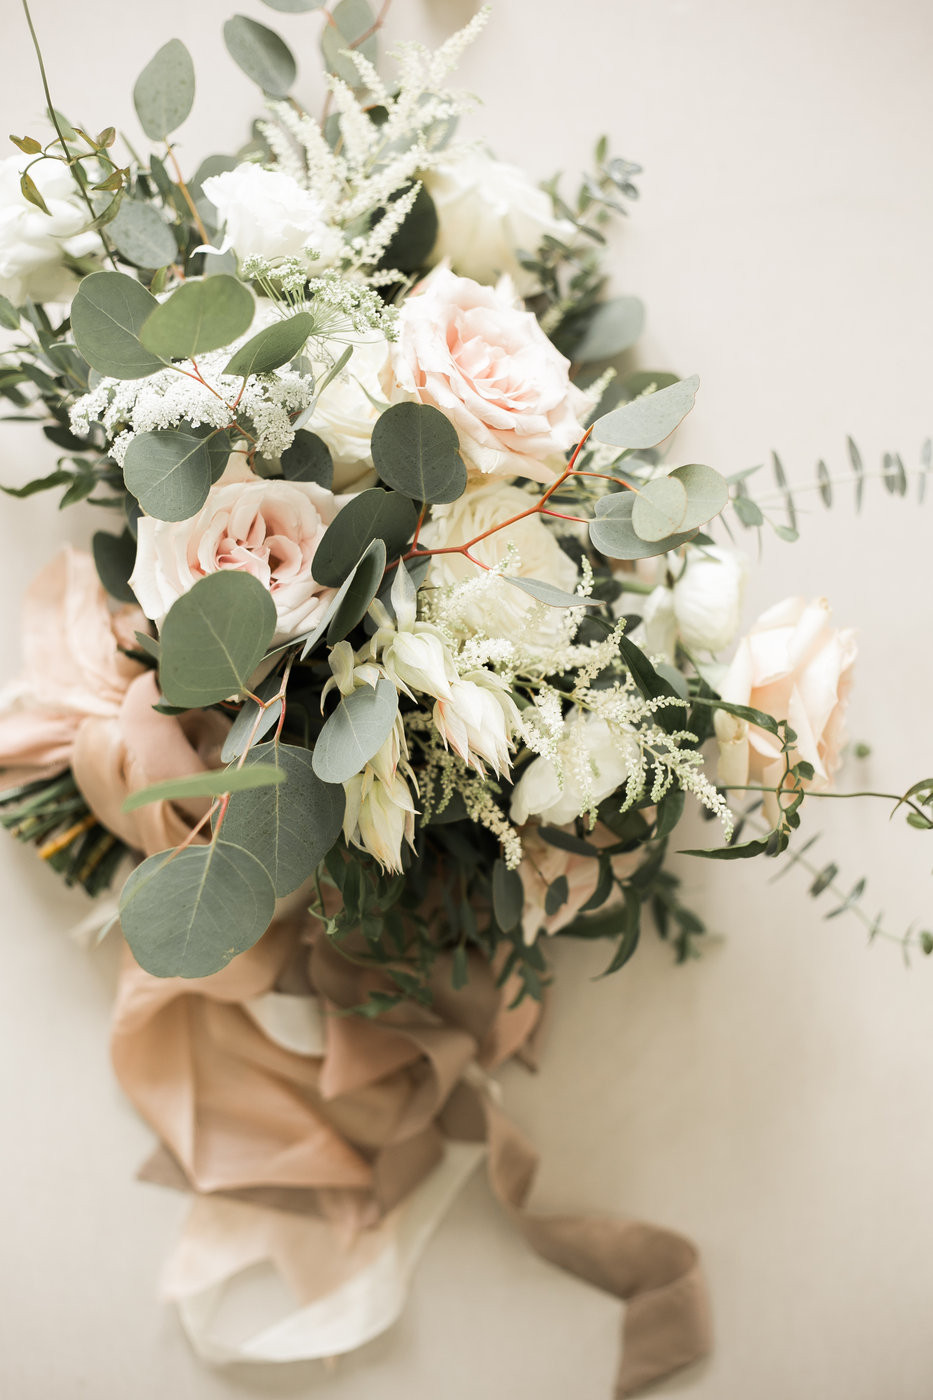 bridal bouquet by studio bloom iowa of roses, blushing bride protea, ranunculus, astilbe, and eucalyptus